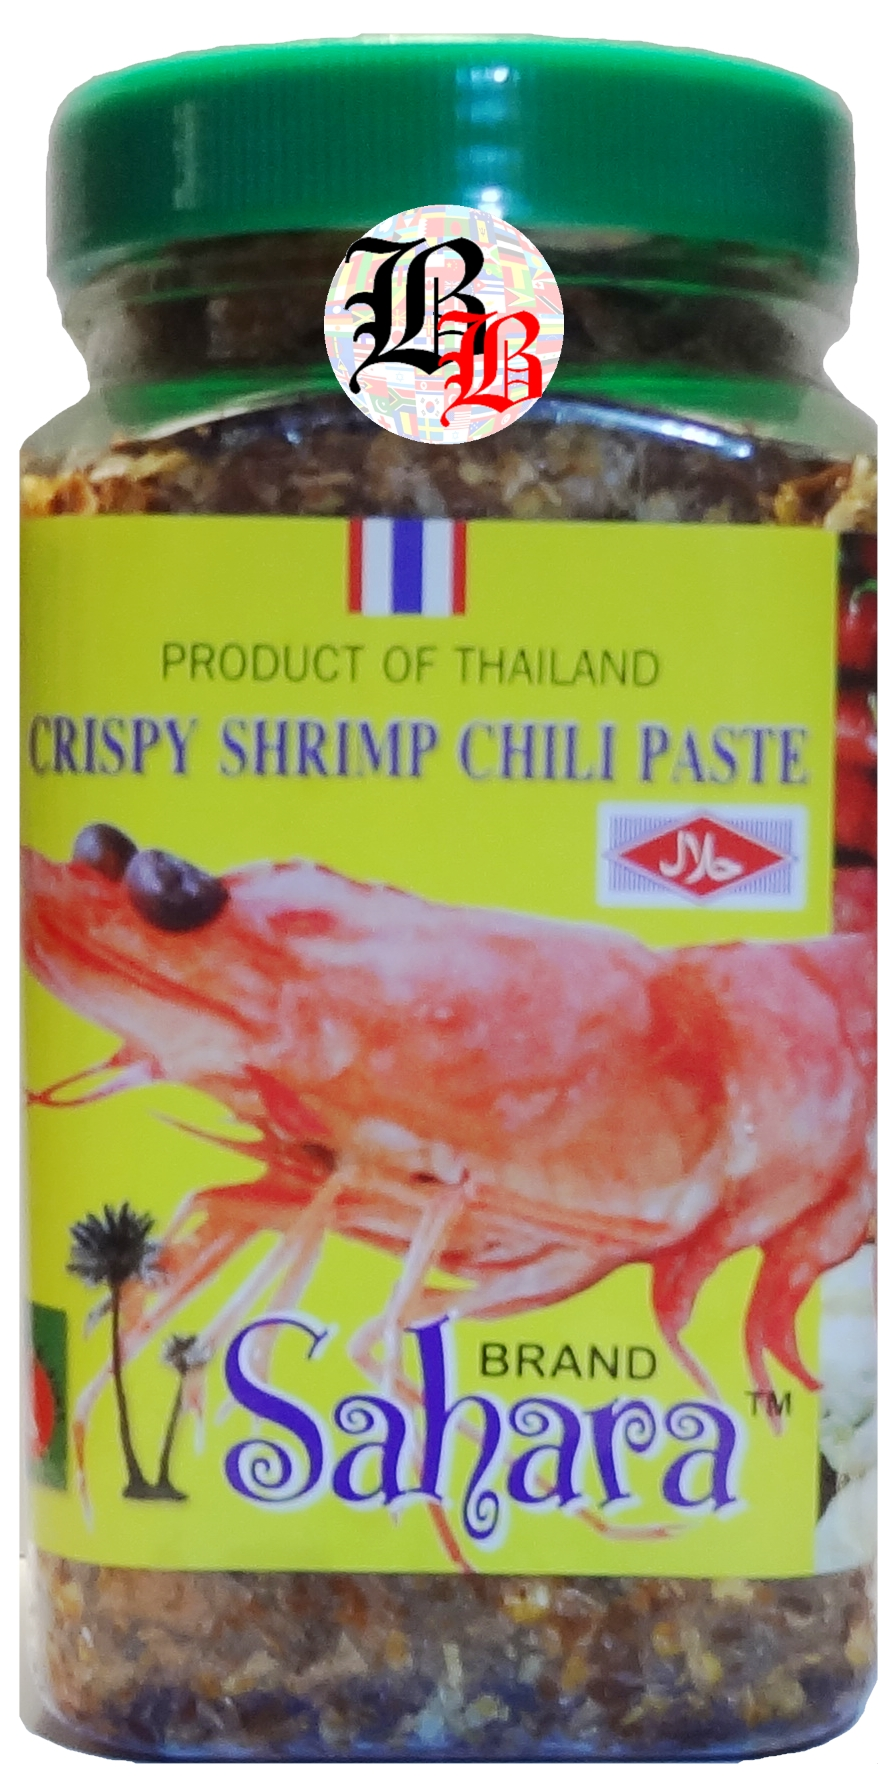 CRISPY SHRIMP CHILLI PASTE 6.34 OZ